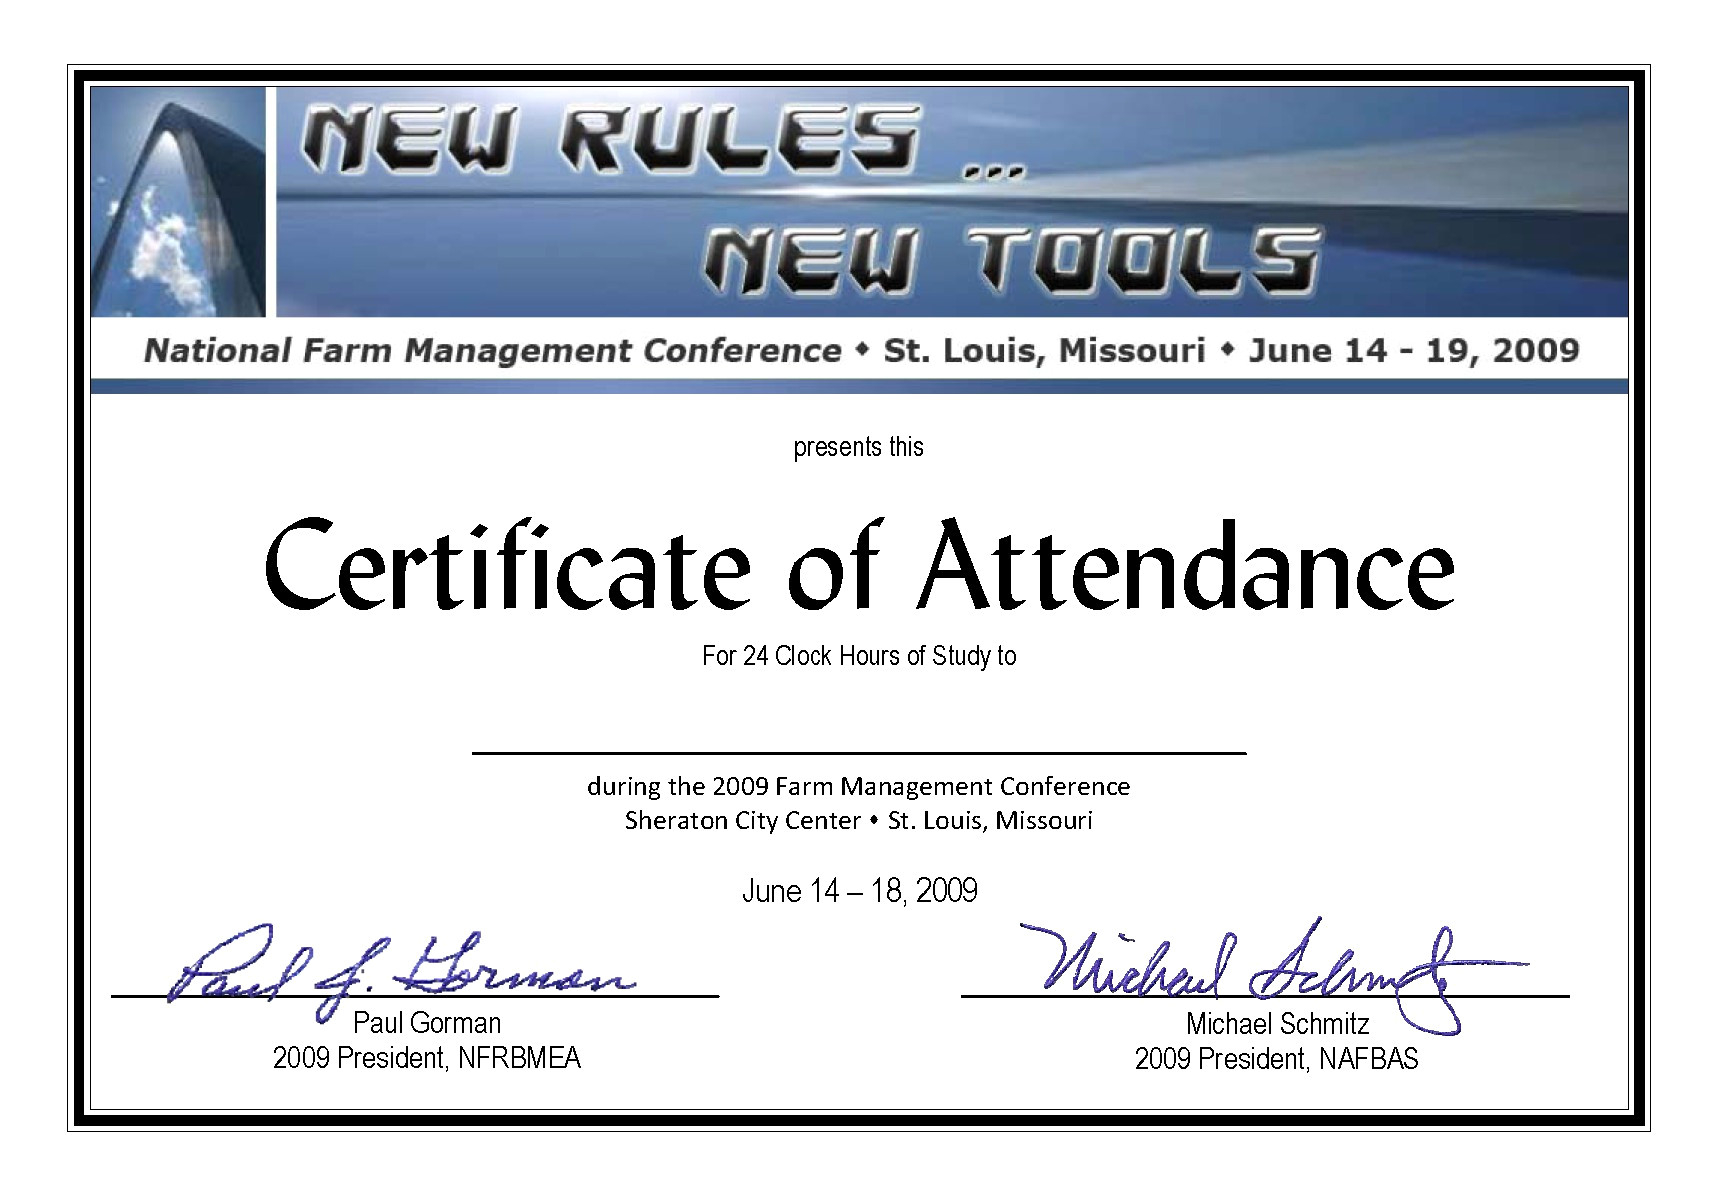 Conference Certificate Template Word  Certificatetemplateword Pertaining To Conference Participation Certificate Template